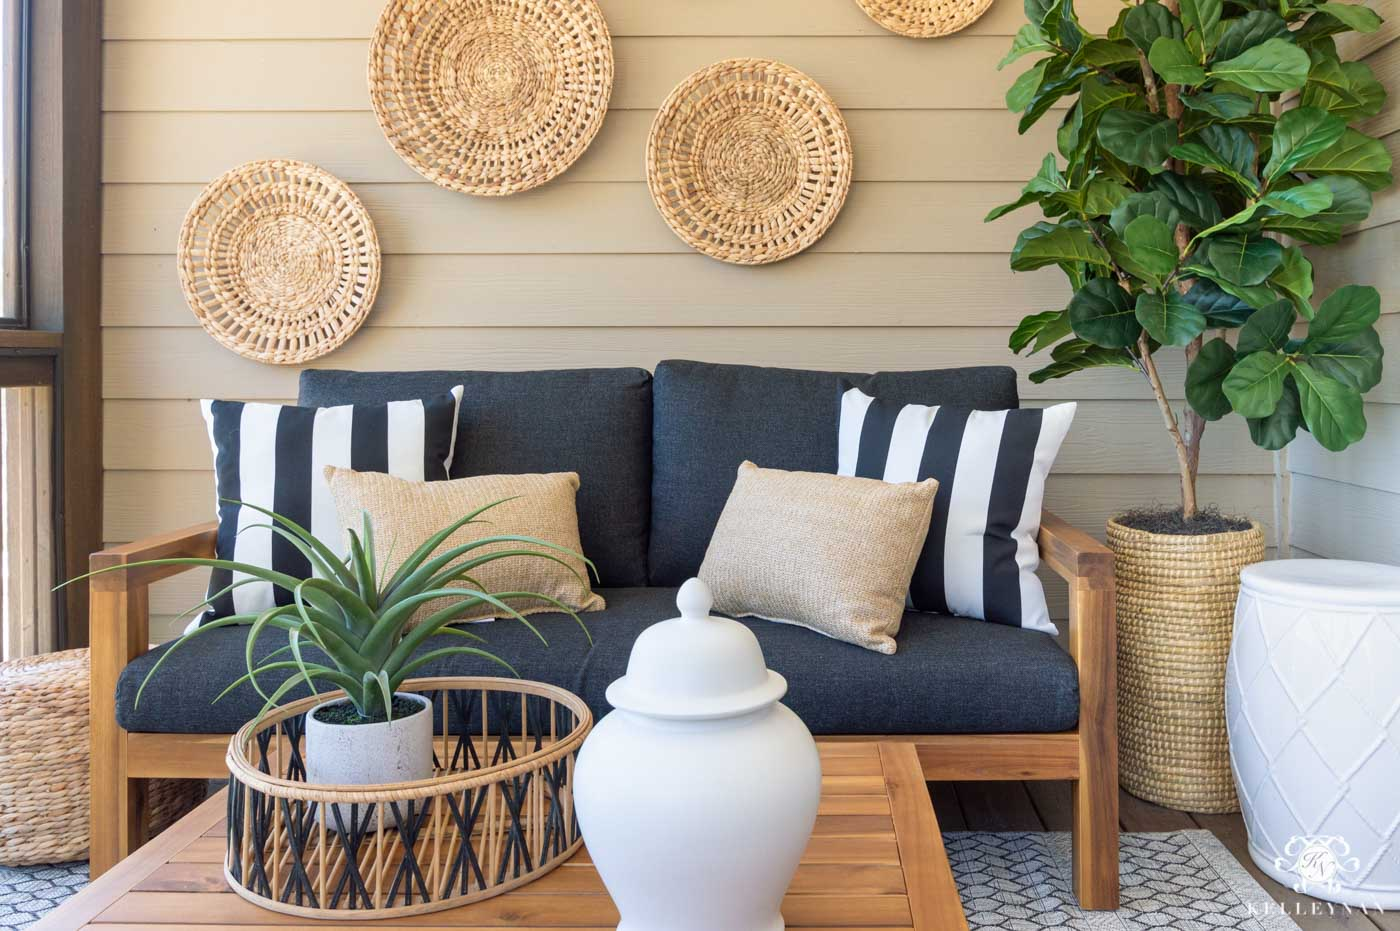 Inexpensive Outdoor Living Decor and Ideas